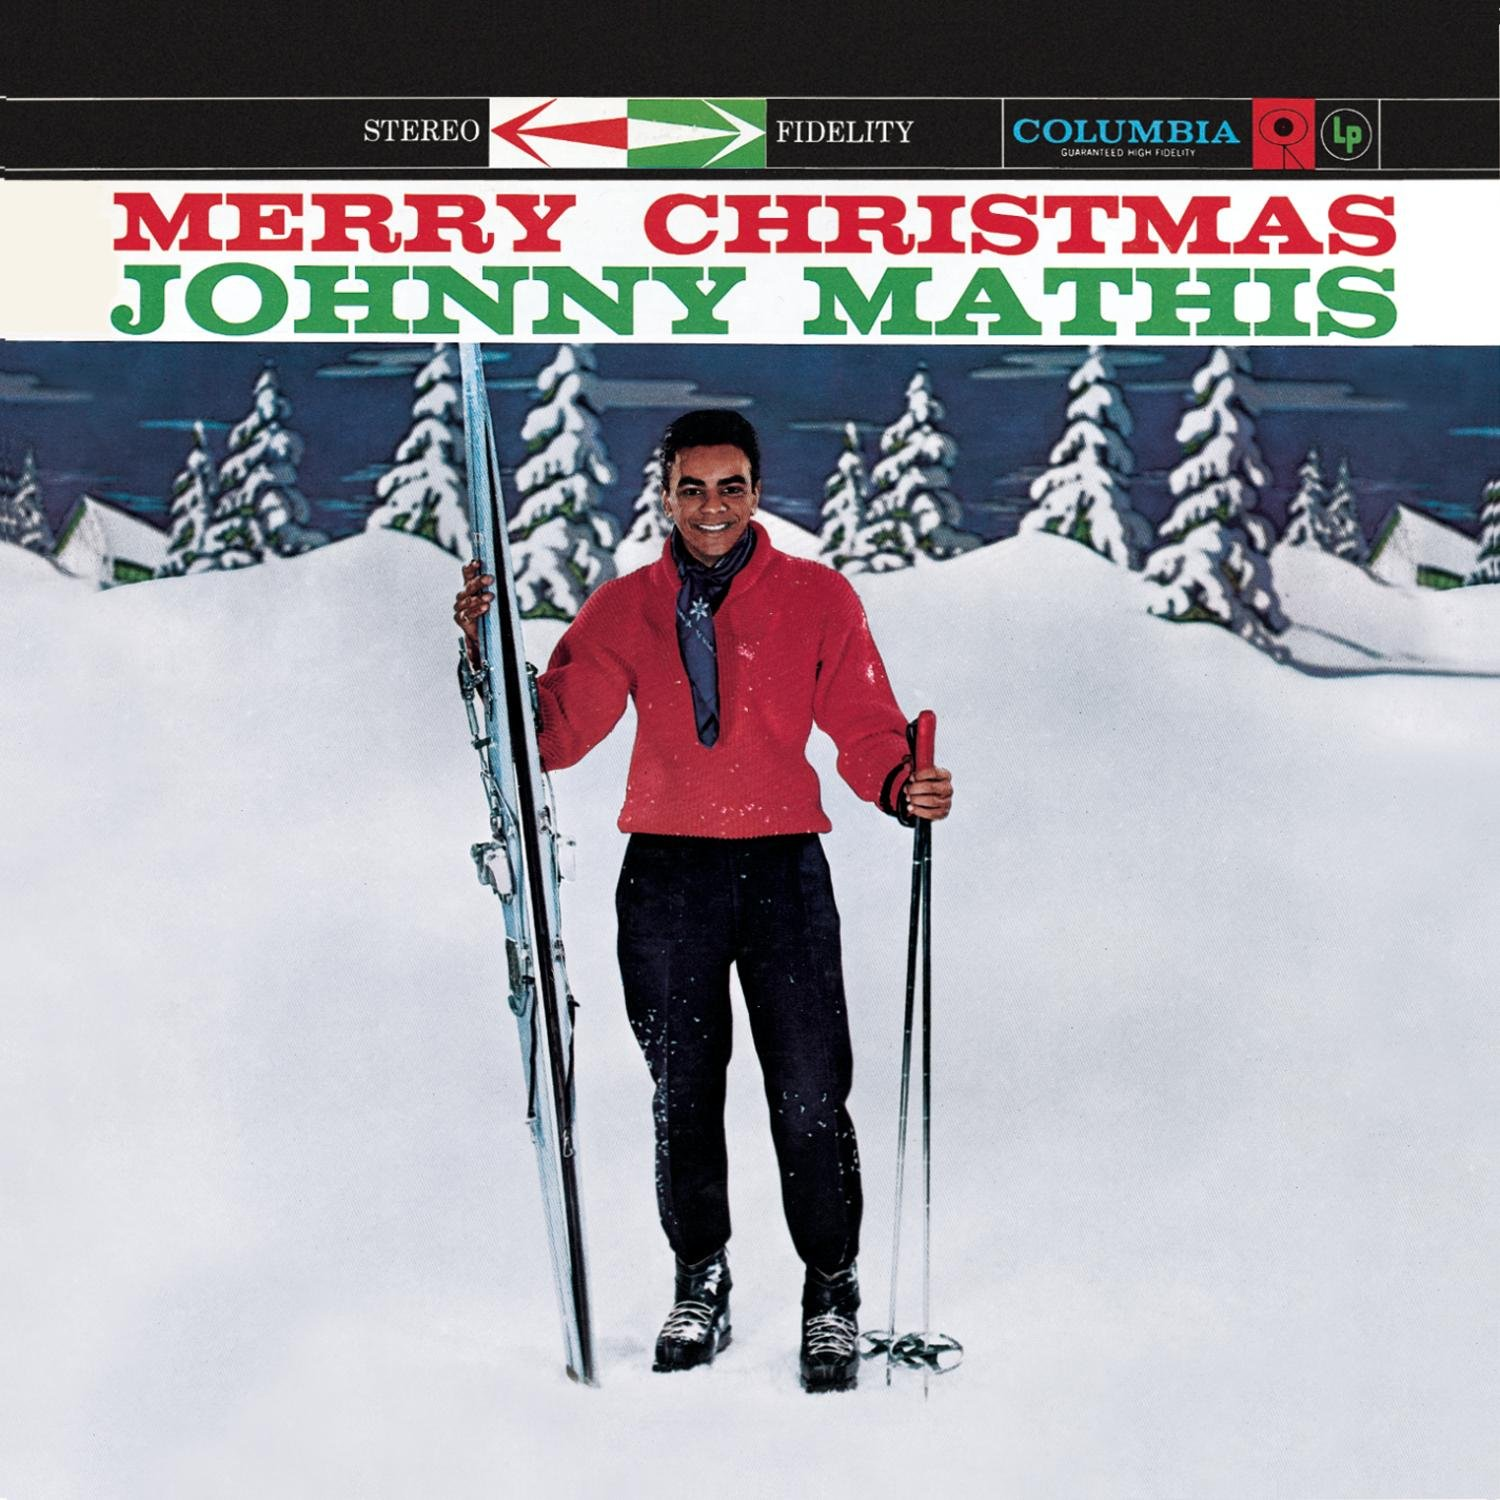 Johnny Mathis - Merry Christmas - Amazon.com Music